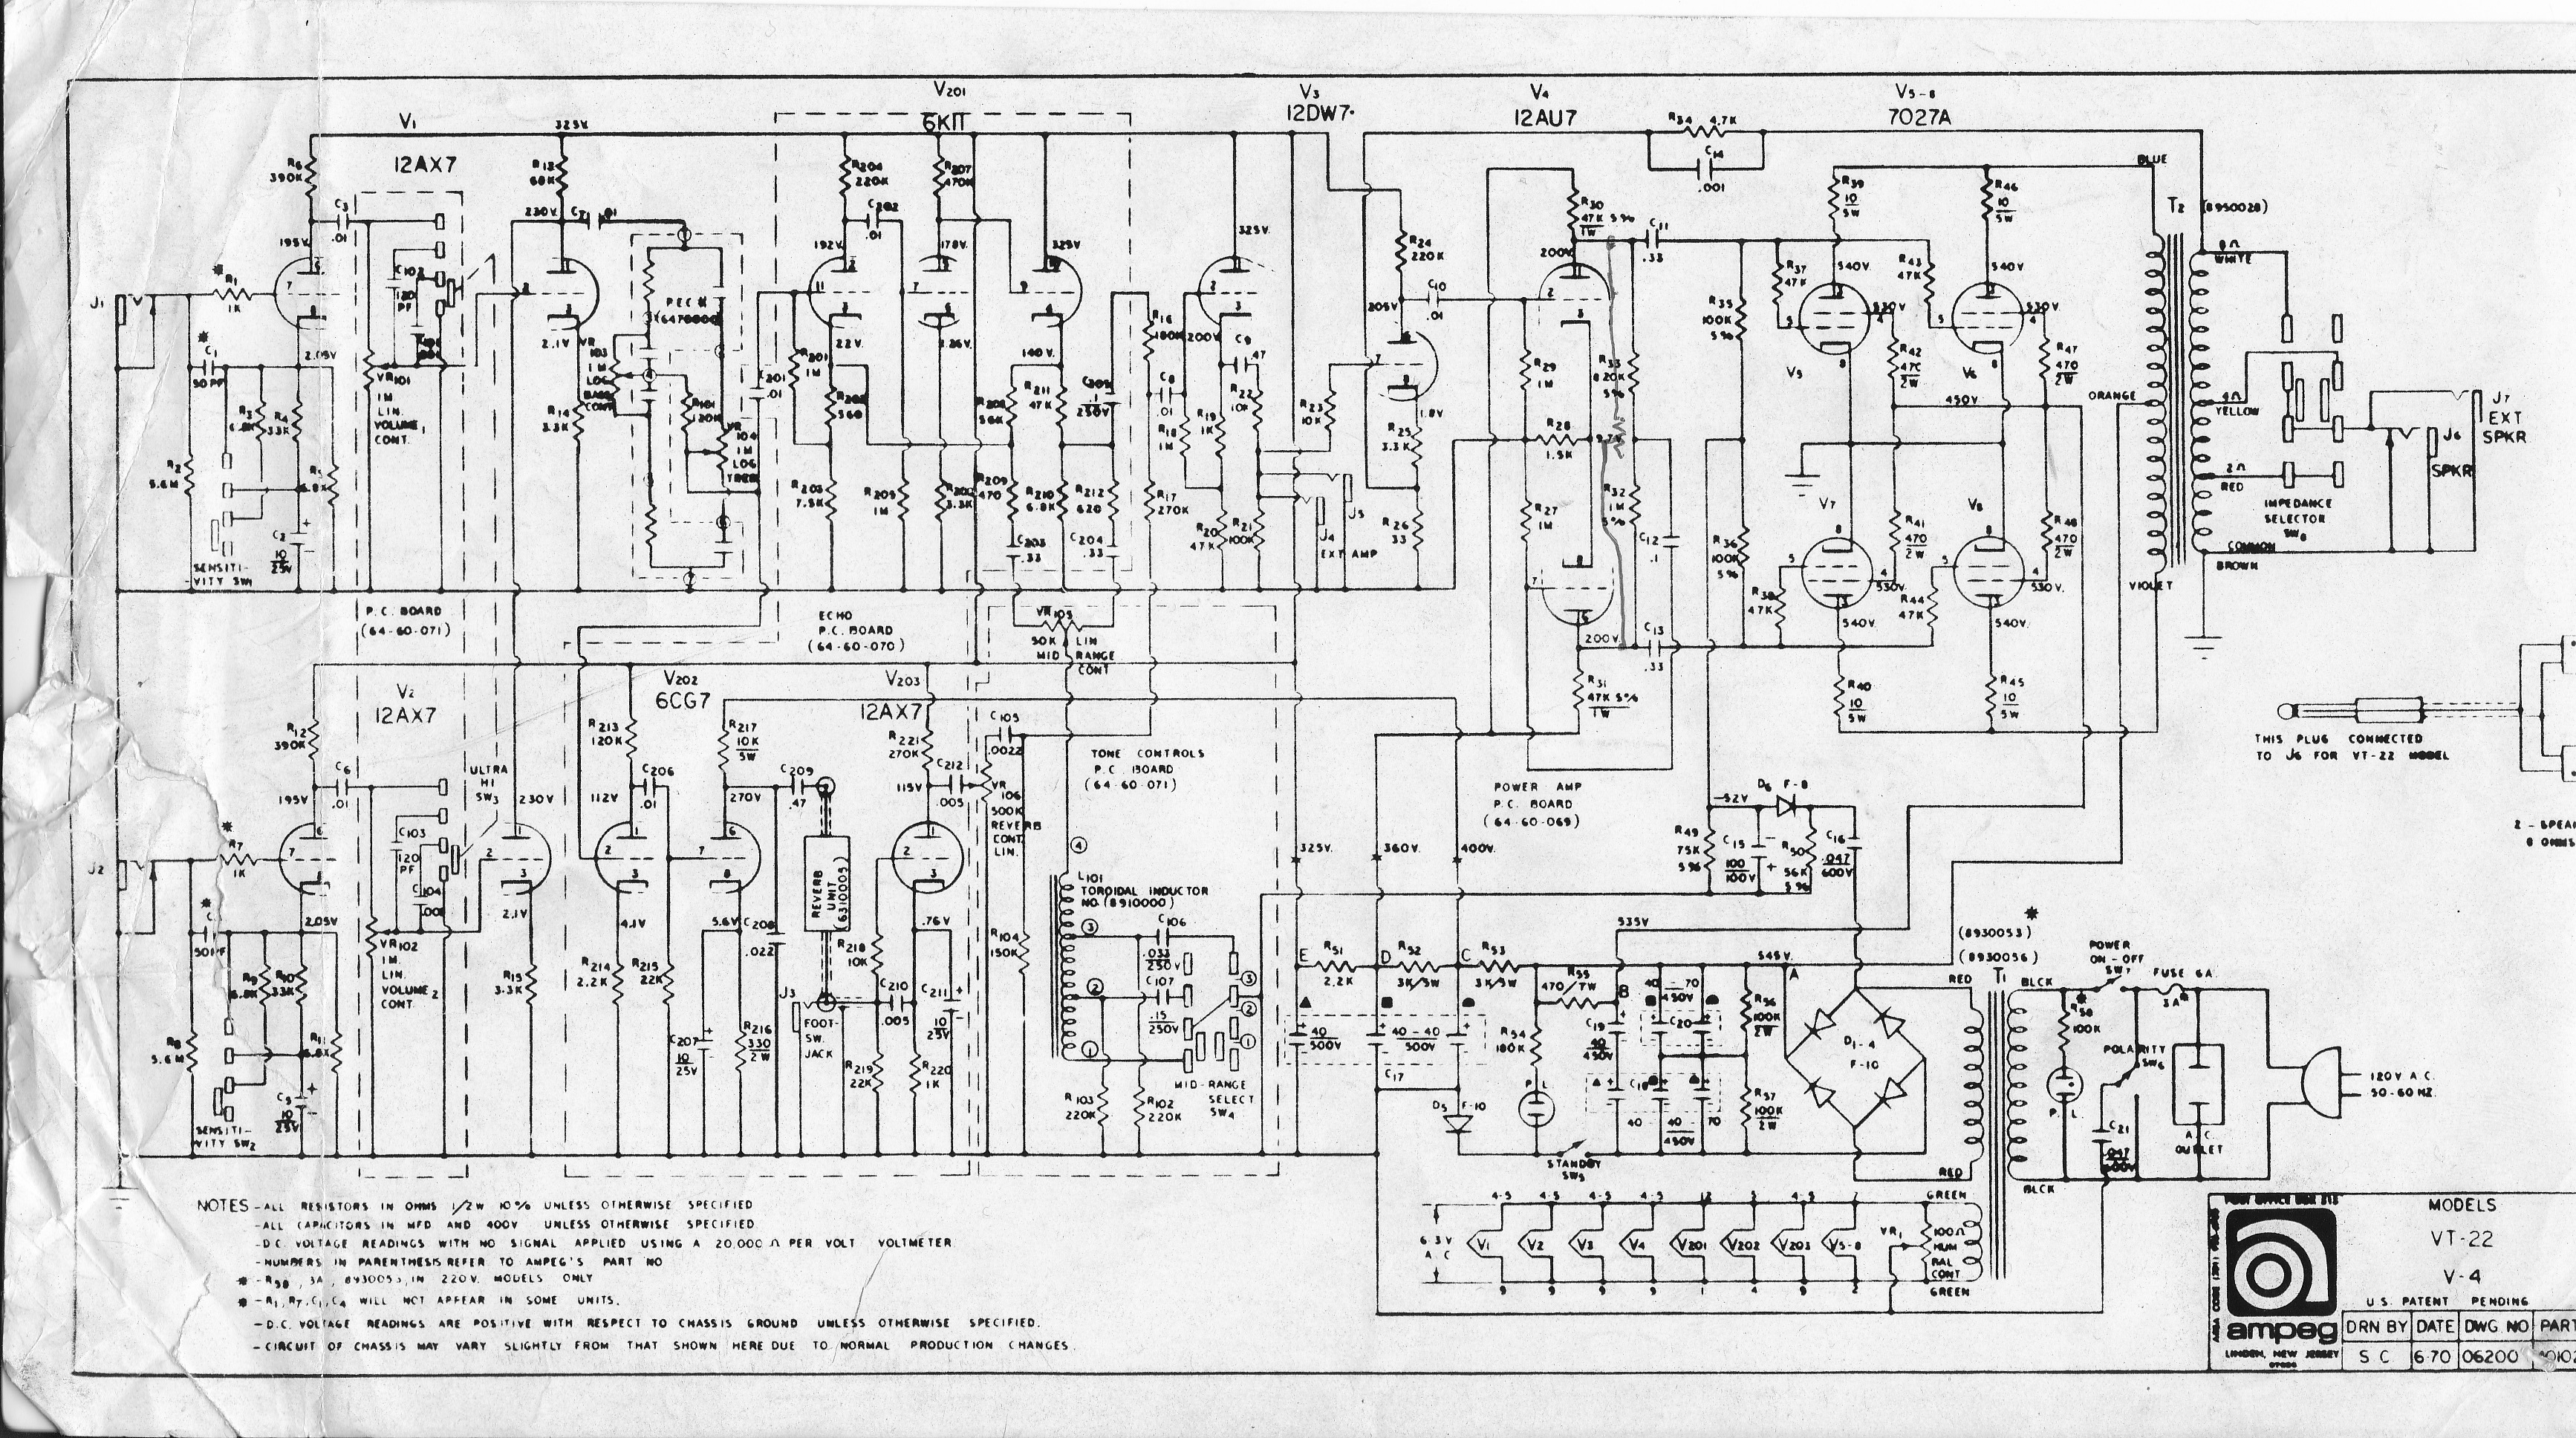 Vintage Ampeg | Docs on fender bassman schematic, marshall jtm 45 schematic, fender twin schematic, fender 5f6a schematic, fender champ schematic, bugera schematic, rlp 100 pro 100 schematic, mackie preamp schematic, vibro-king schematic, fender deluxe schematic, epiphone valve junior schematic, amplifier schematic, hiwatt schematic, marshall super bass schematic, fender vibroverb schematic, fender super reverb schematic,